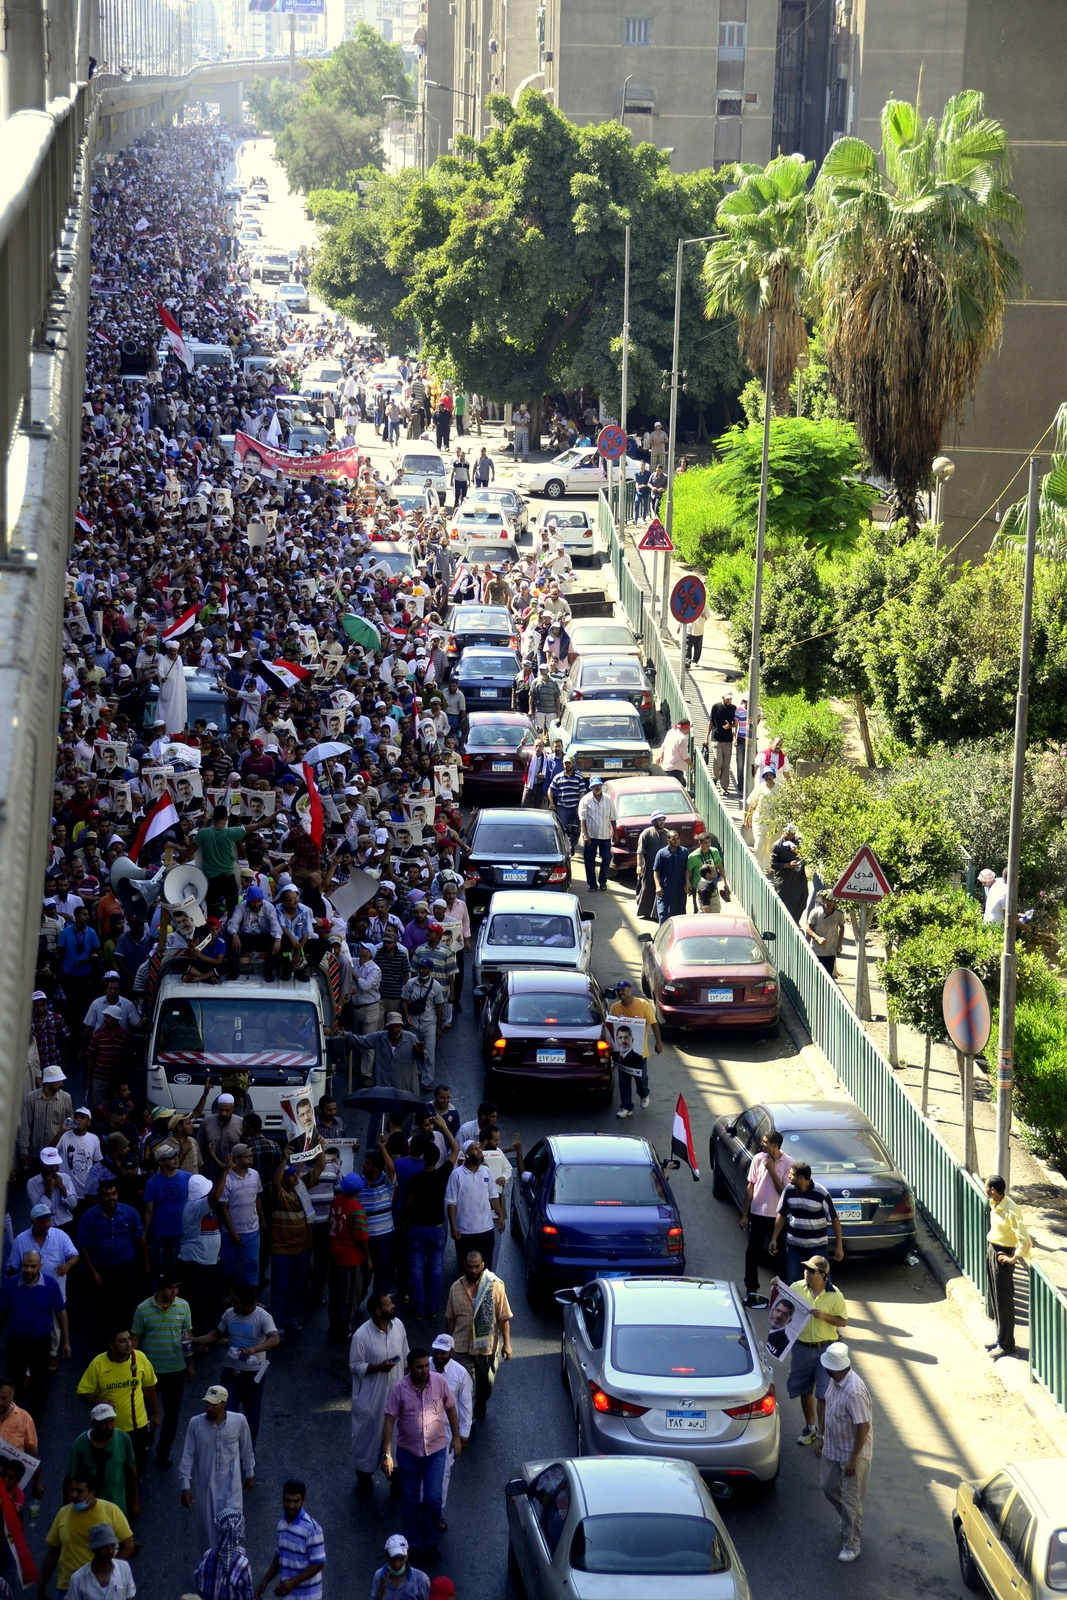 Morsi supporters march from Ramses Square to Rabaa sit in (Photo by Aaron T Rose)